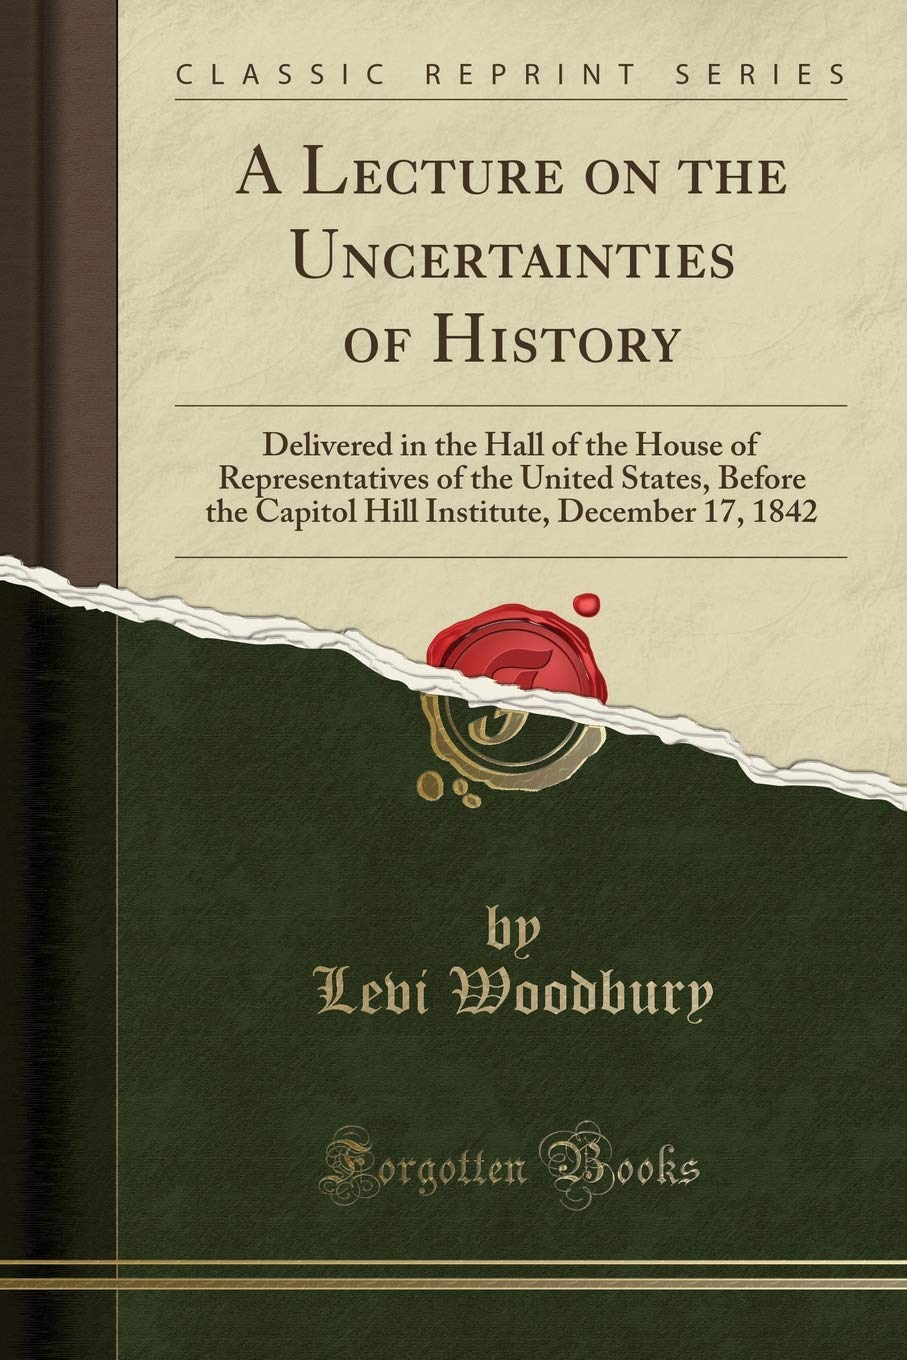 Download A Lecture on the Uncertainties of History: Delivered in the Hall of the House of Representatives of the United States, Before the Capitol Hill Institute, December 17, 1842 (Classic Reprint) PDF Text fb2 book